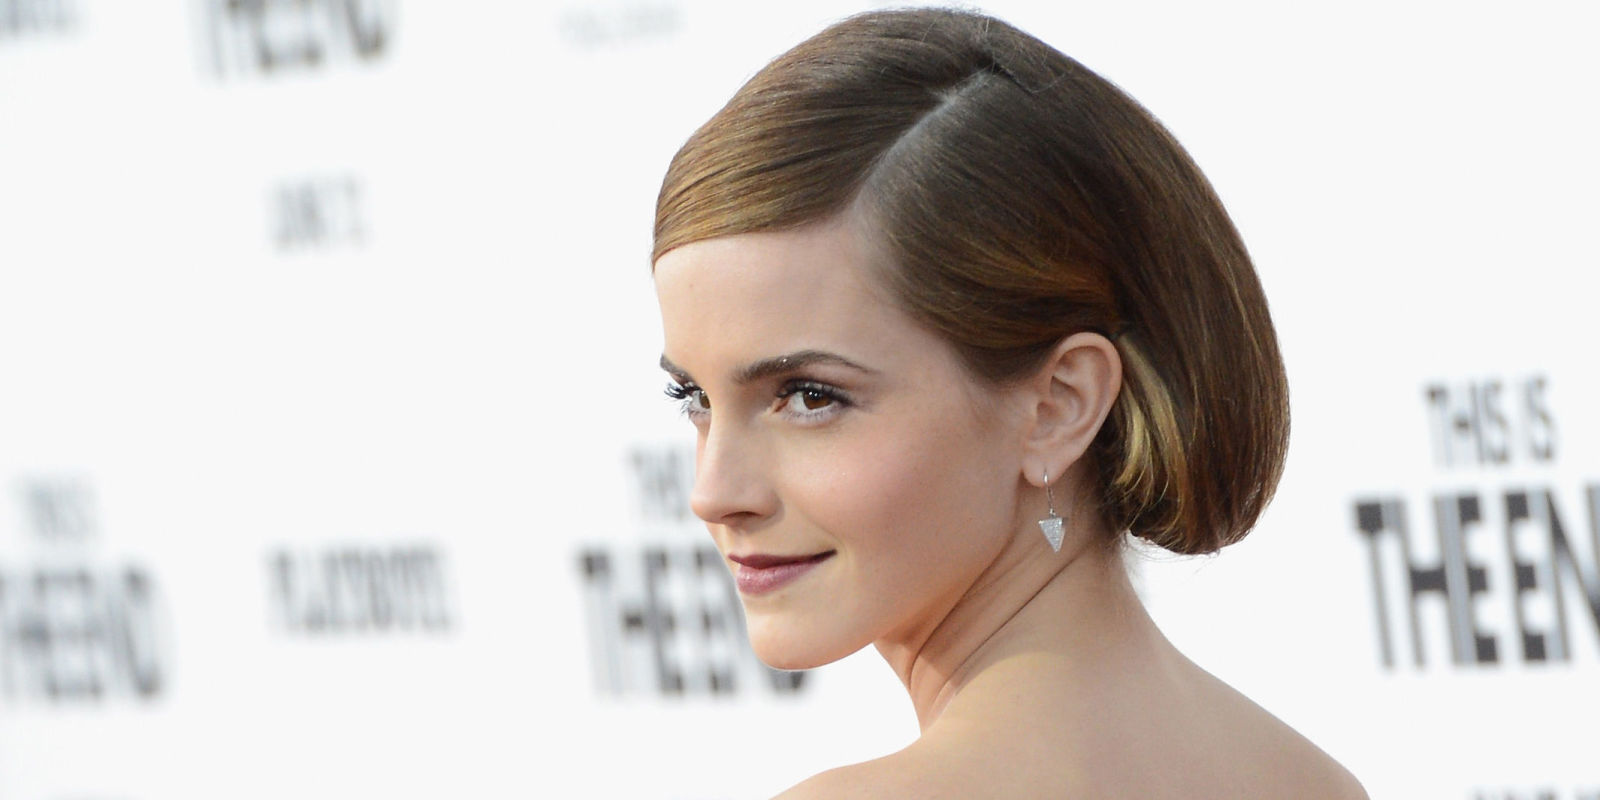 emma watson launches fashion instagram account to promote